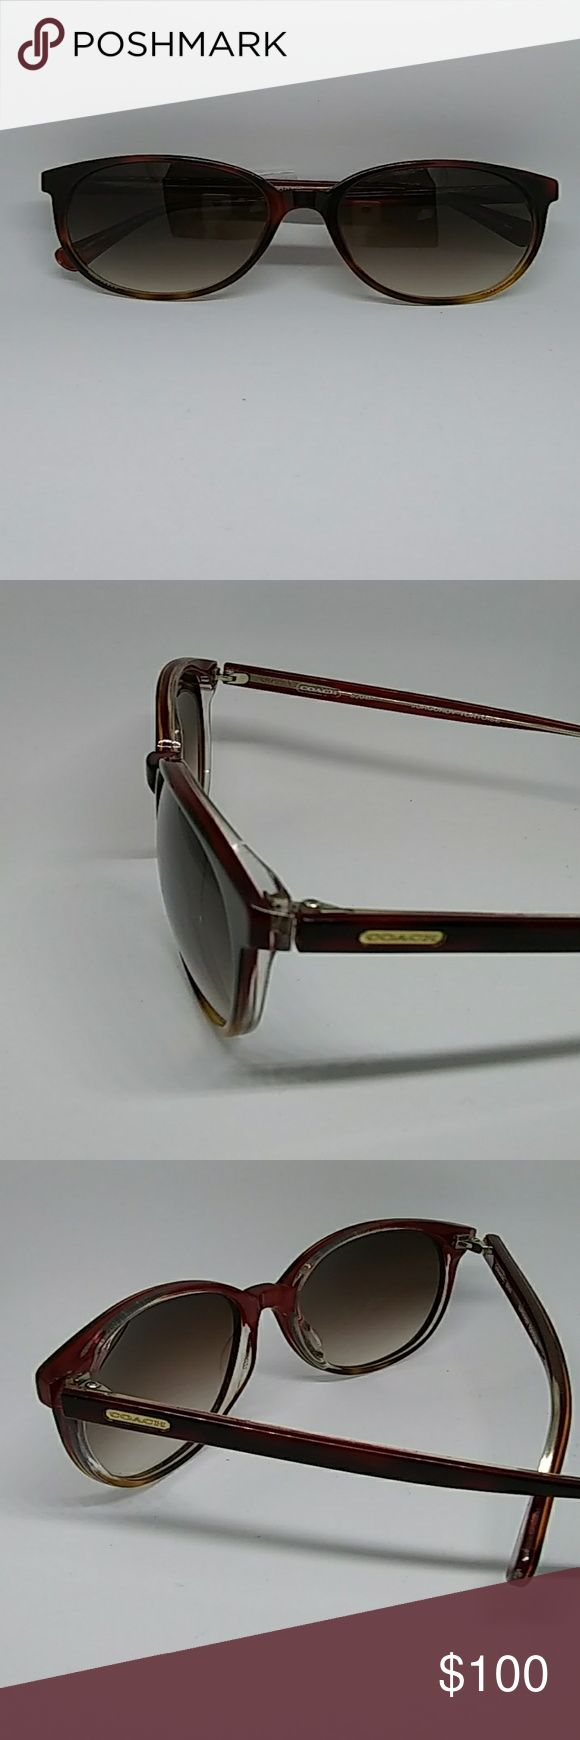 Gorgeous Coach sunglasses slight scuffs in lens Womens Gorgeous Coach sunglasses slight scuffs in lens. Perfect for beaches and pool side  BUNDLE AND SAVE Coach Accessories Sunglasses